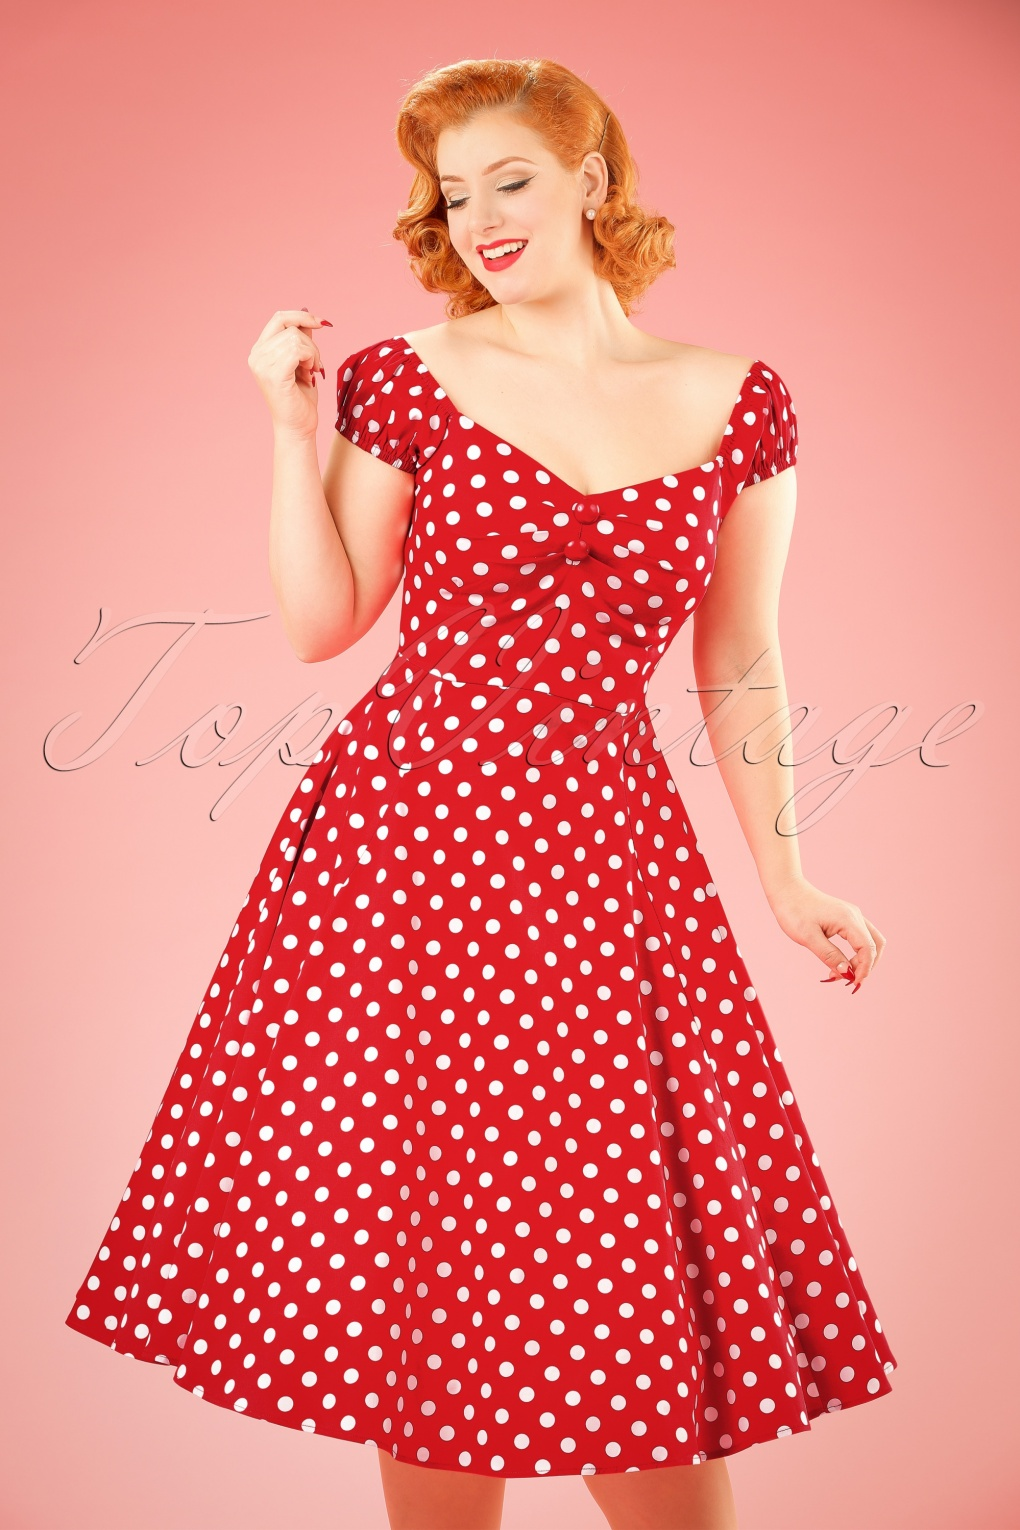 50s Dolores Doll dress Red White polka swing dress